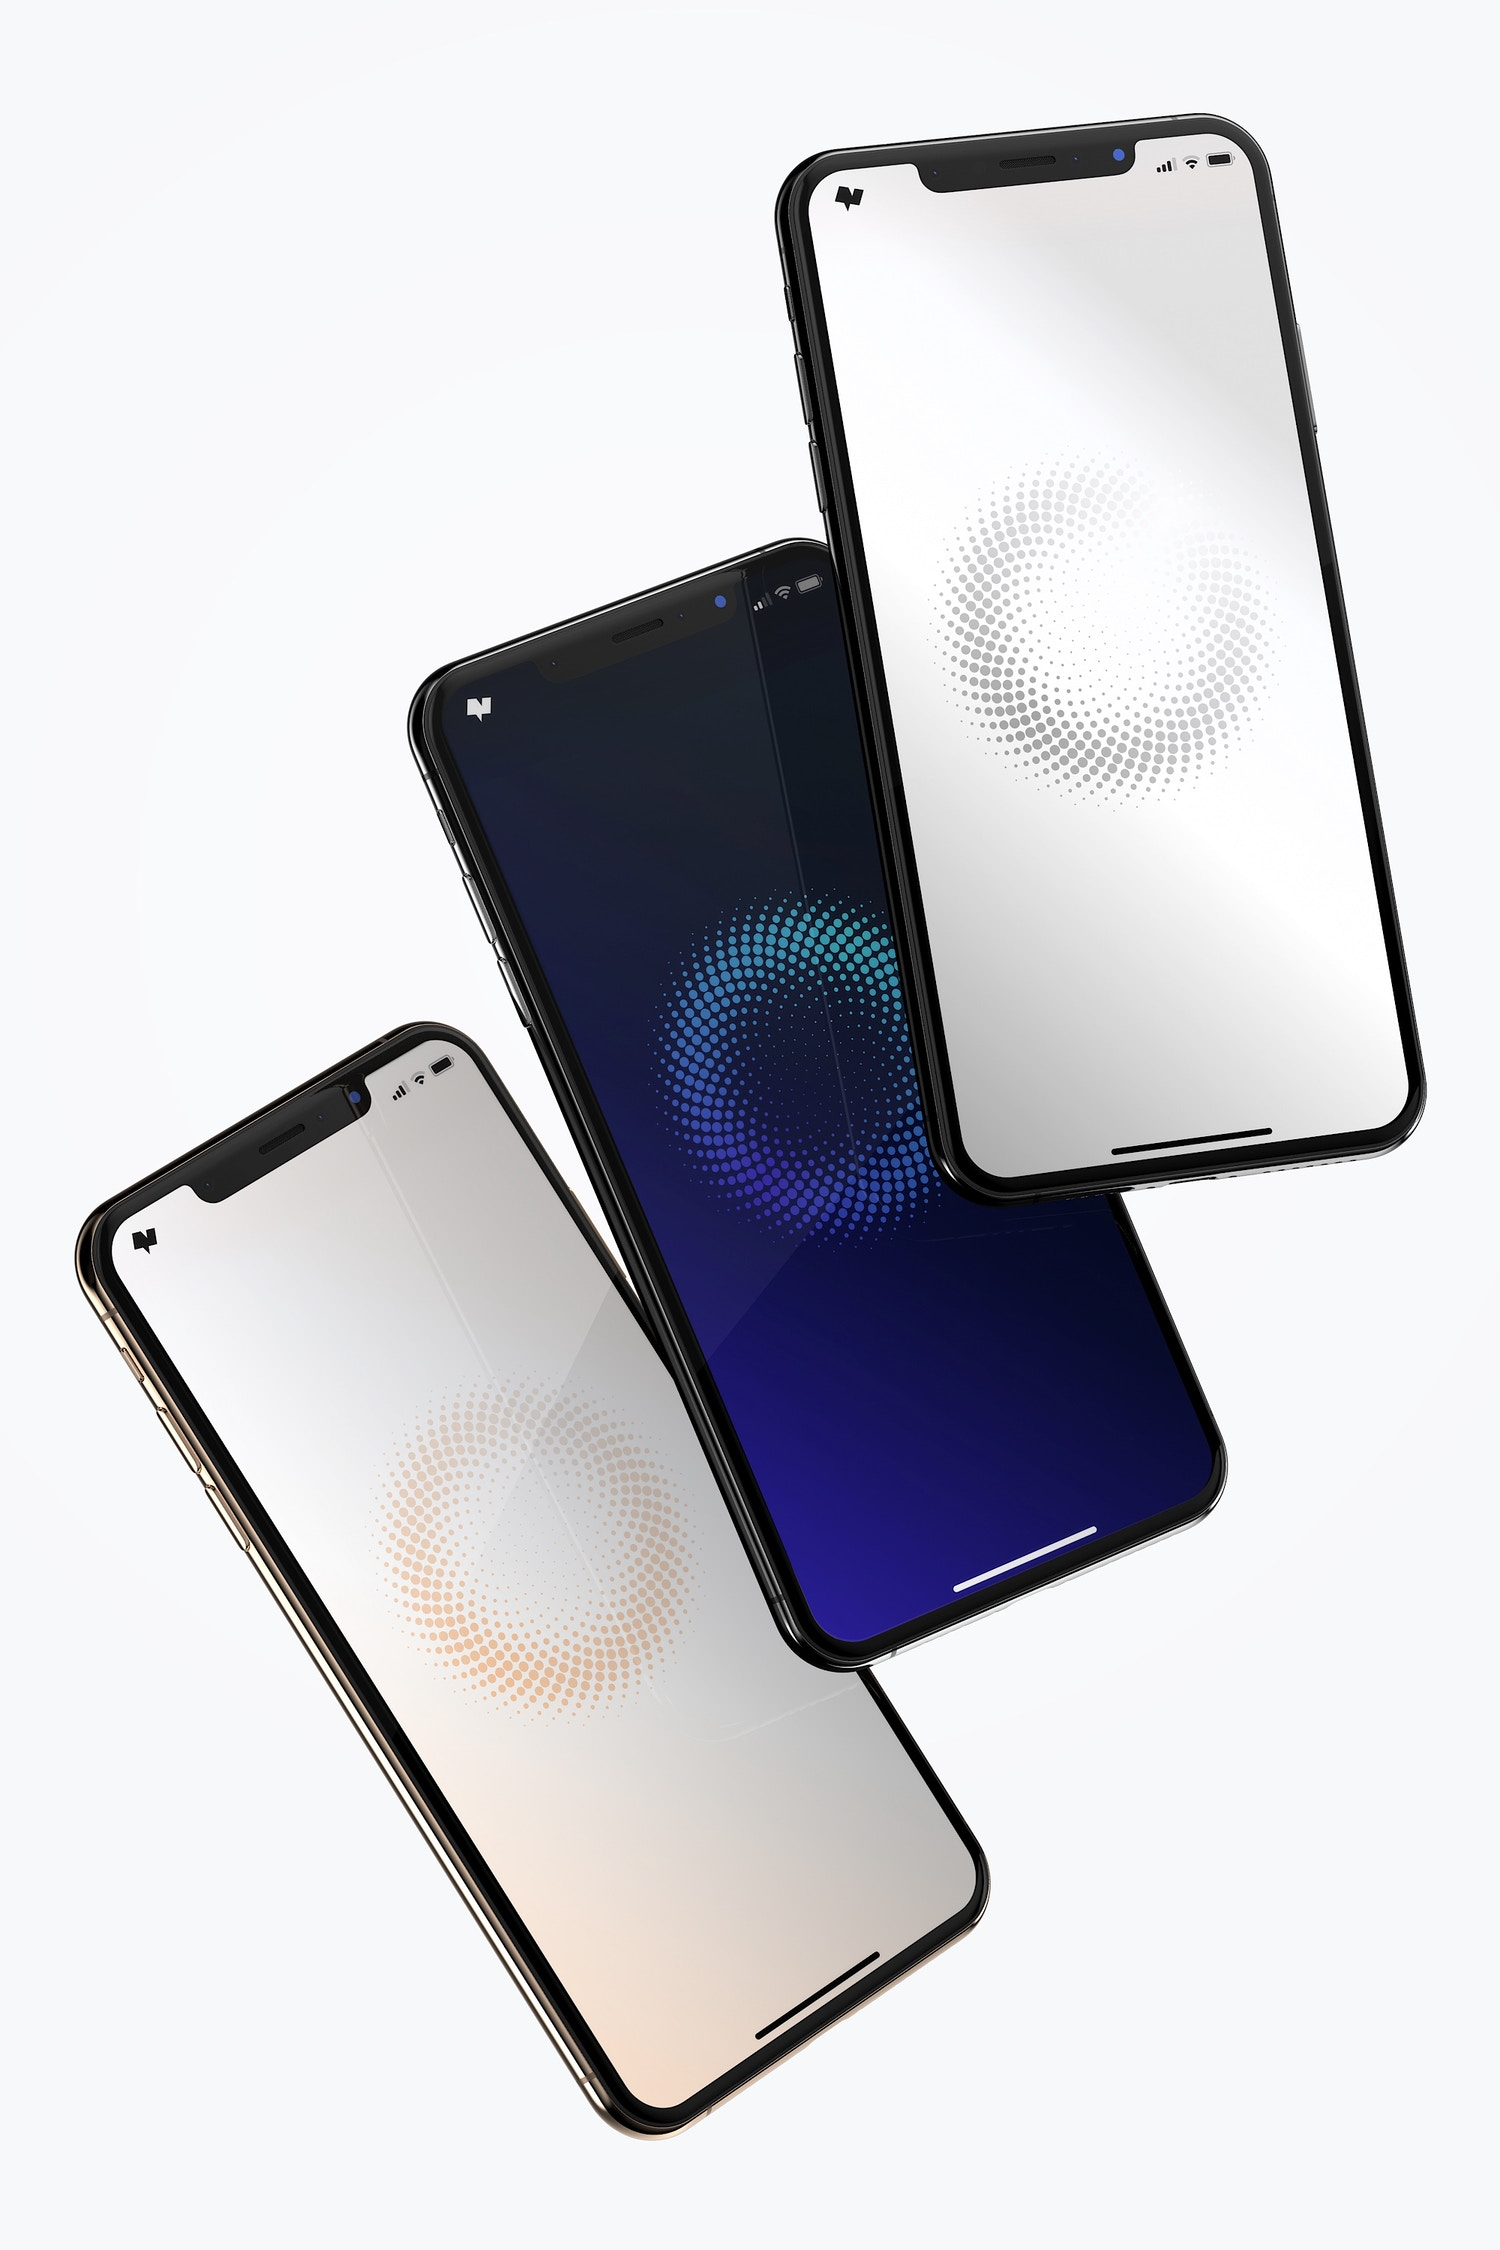 Show the 3 versions of iPhone XS Max.